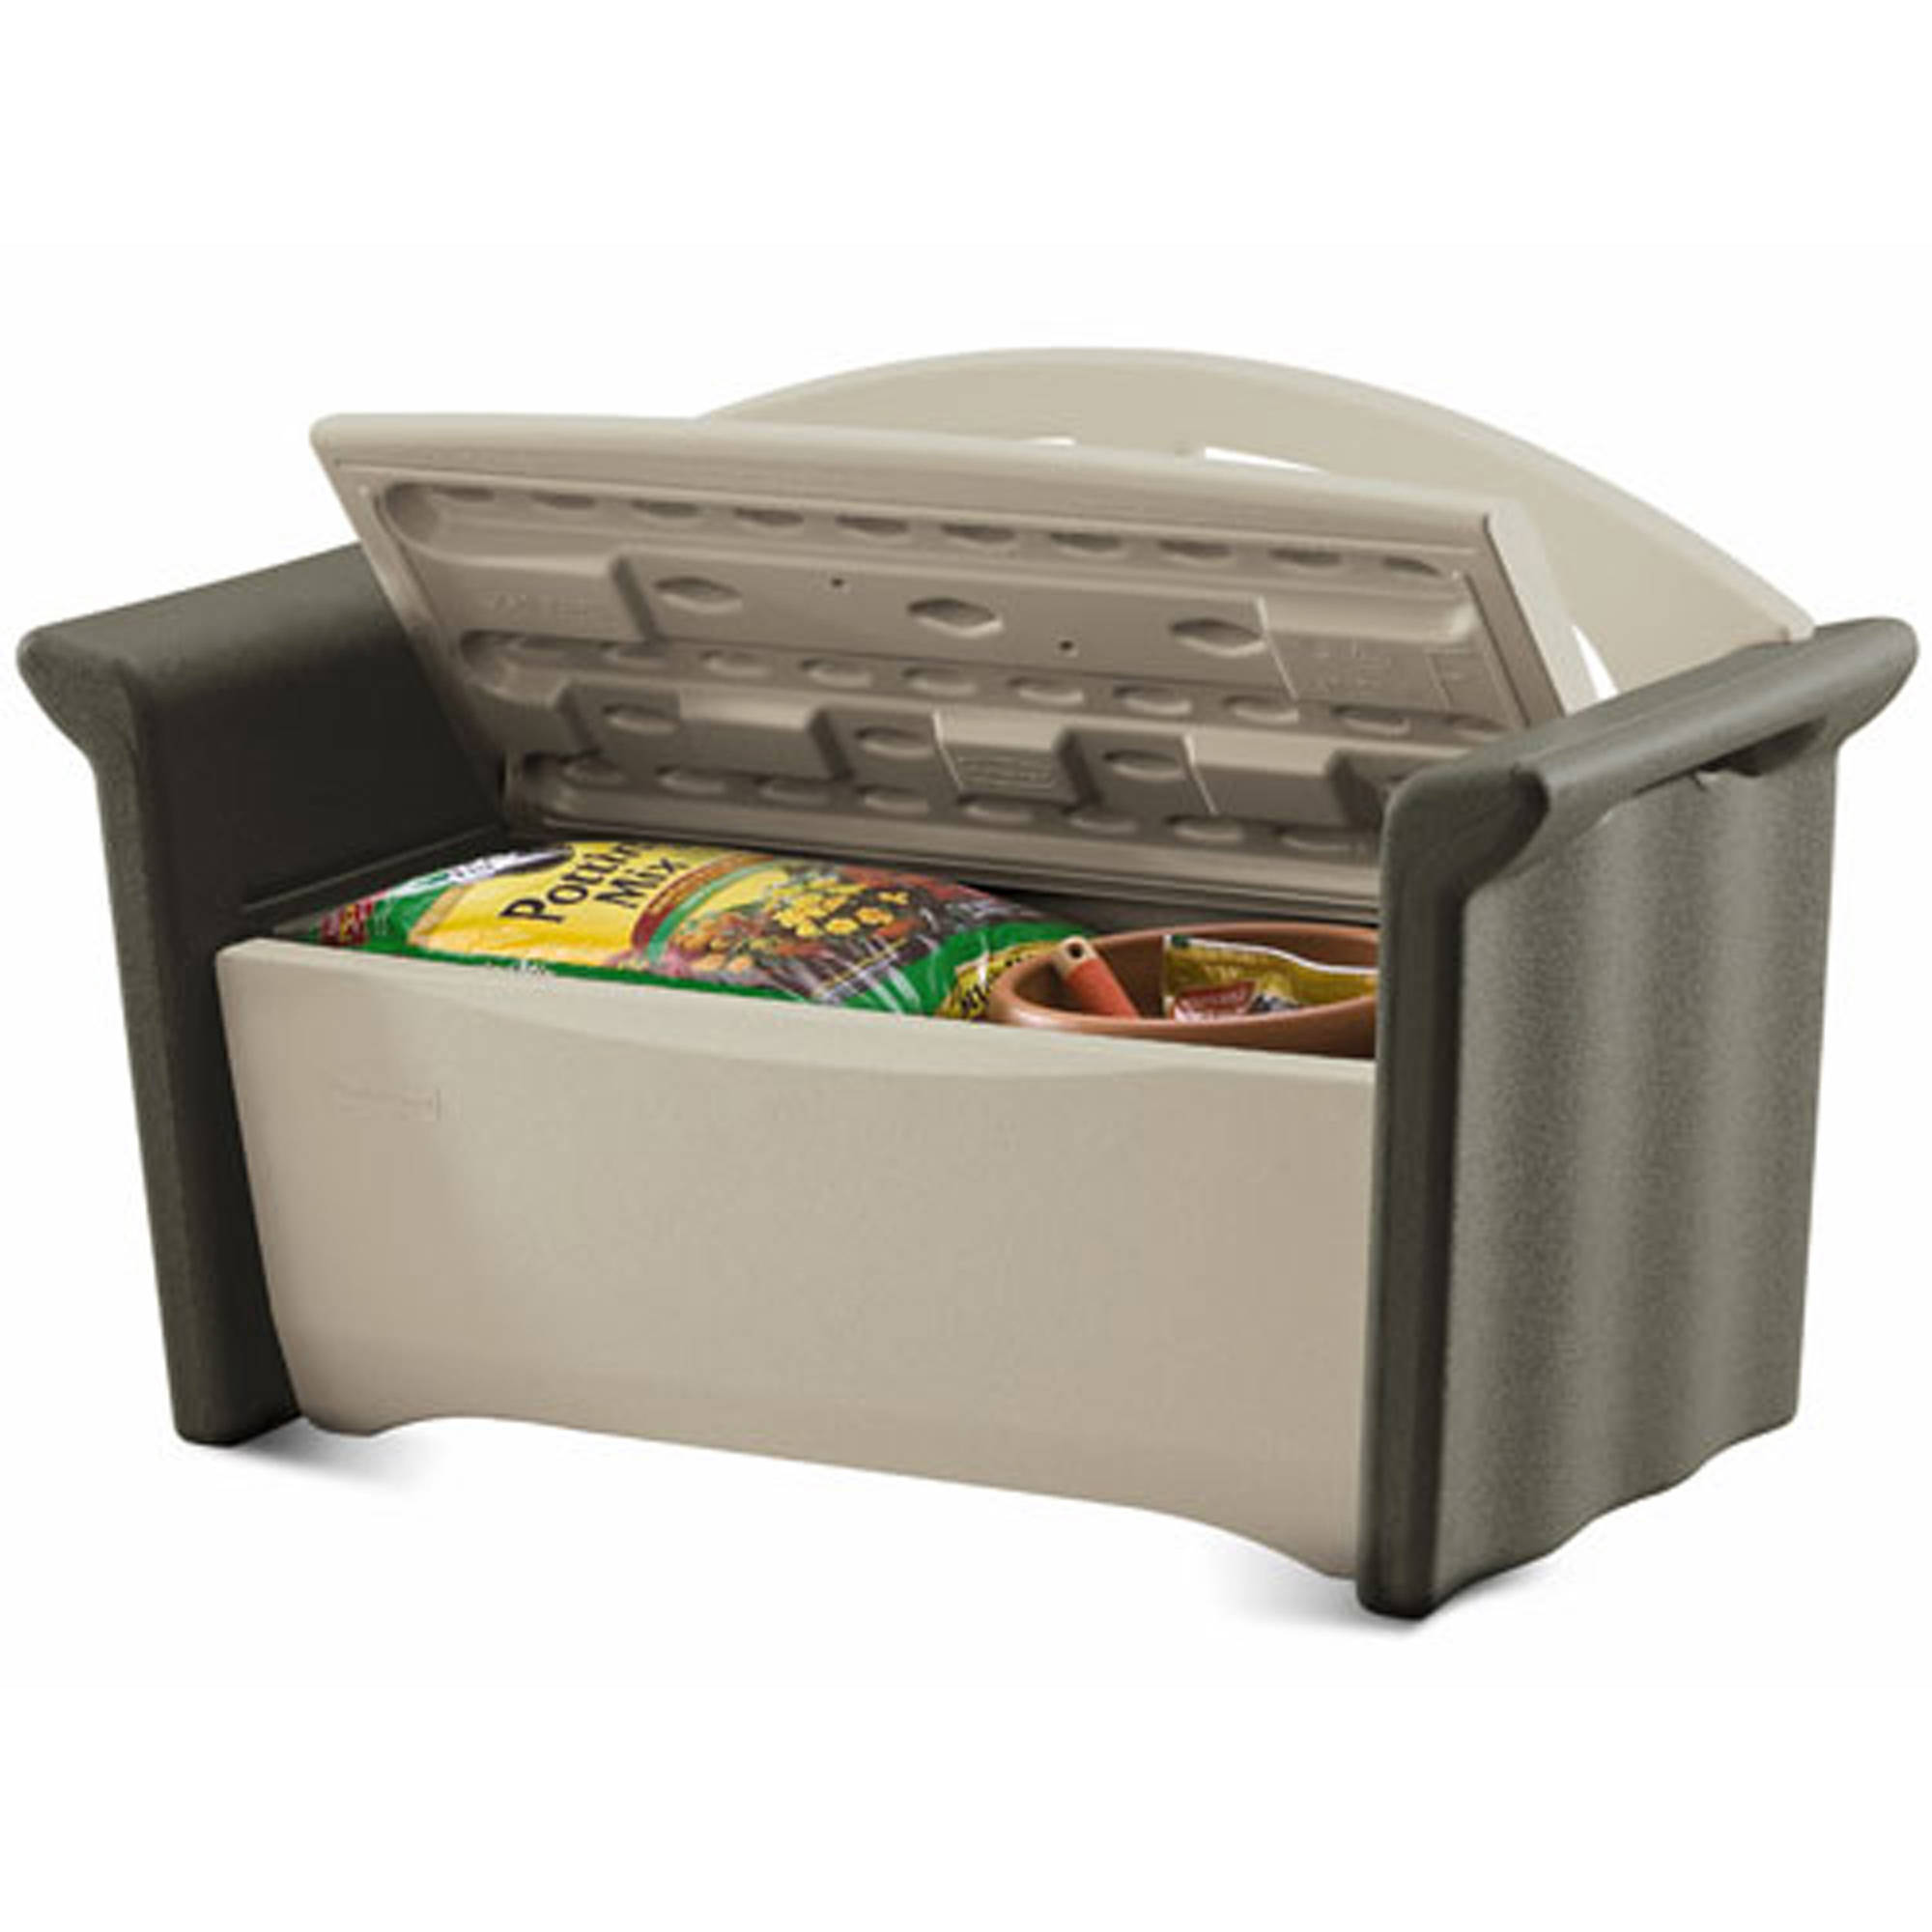 Rubbermaid Patio Storage Bench   Walmart.com